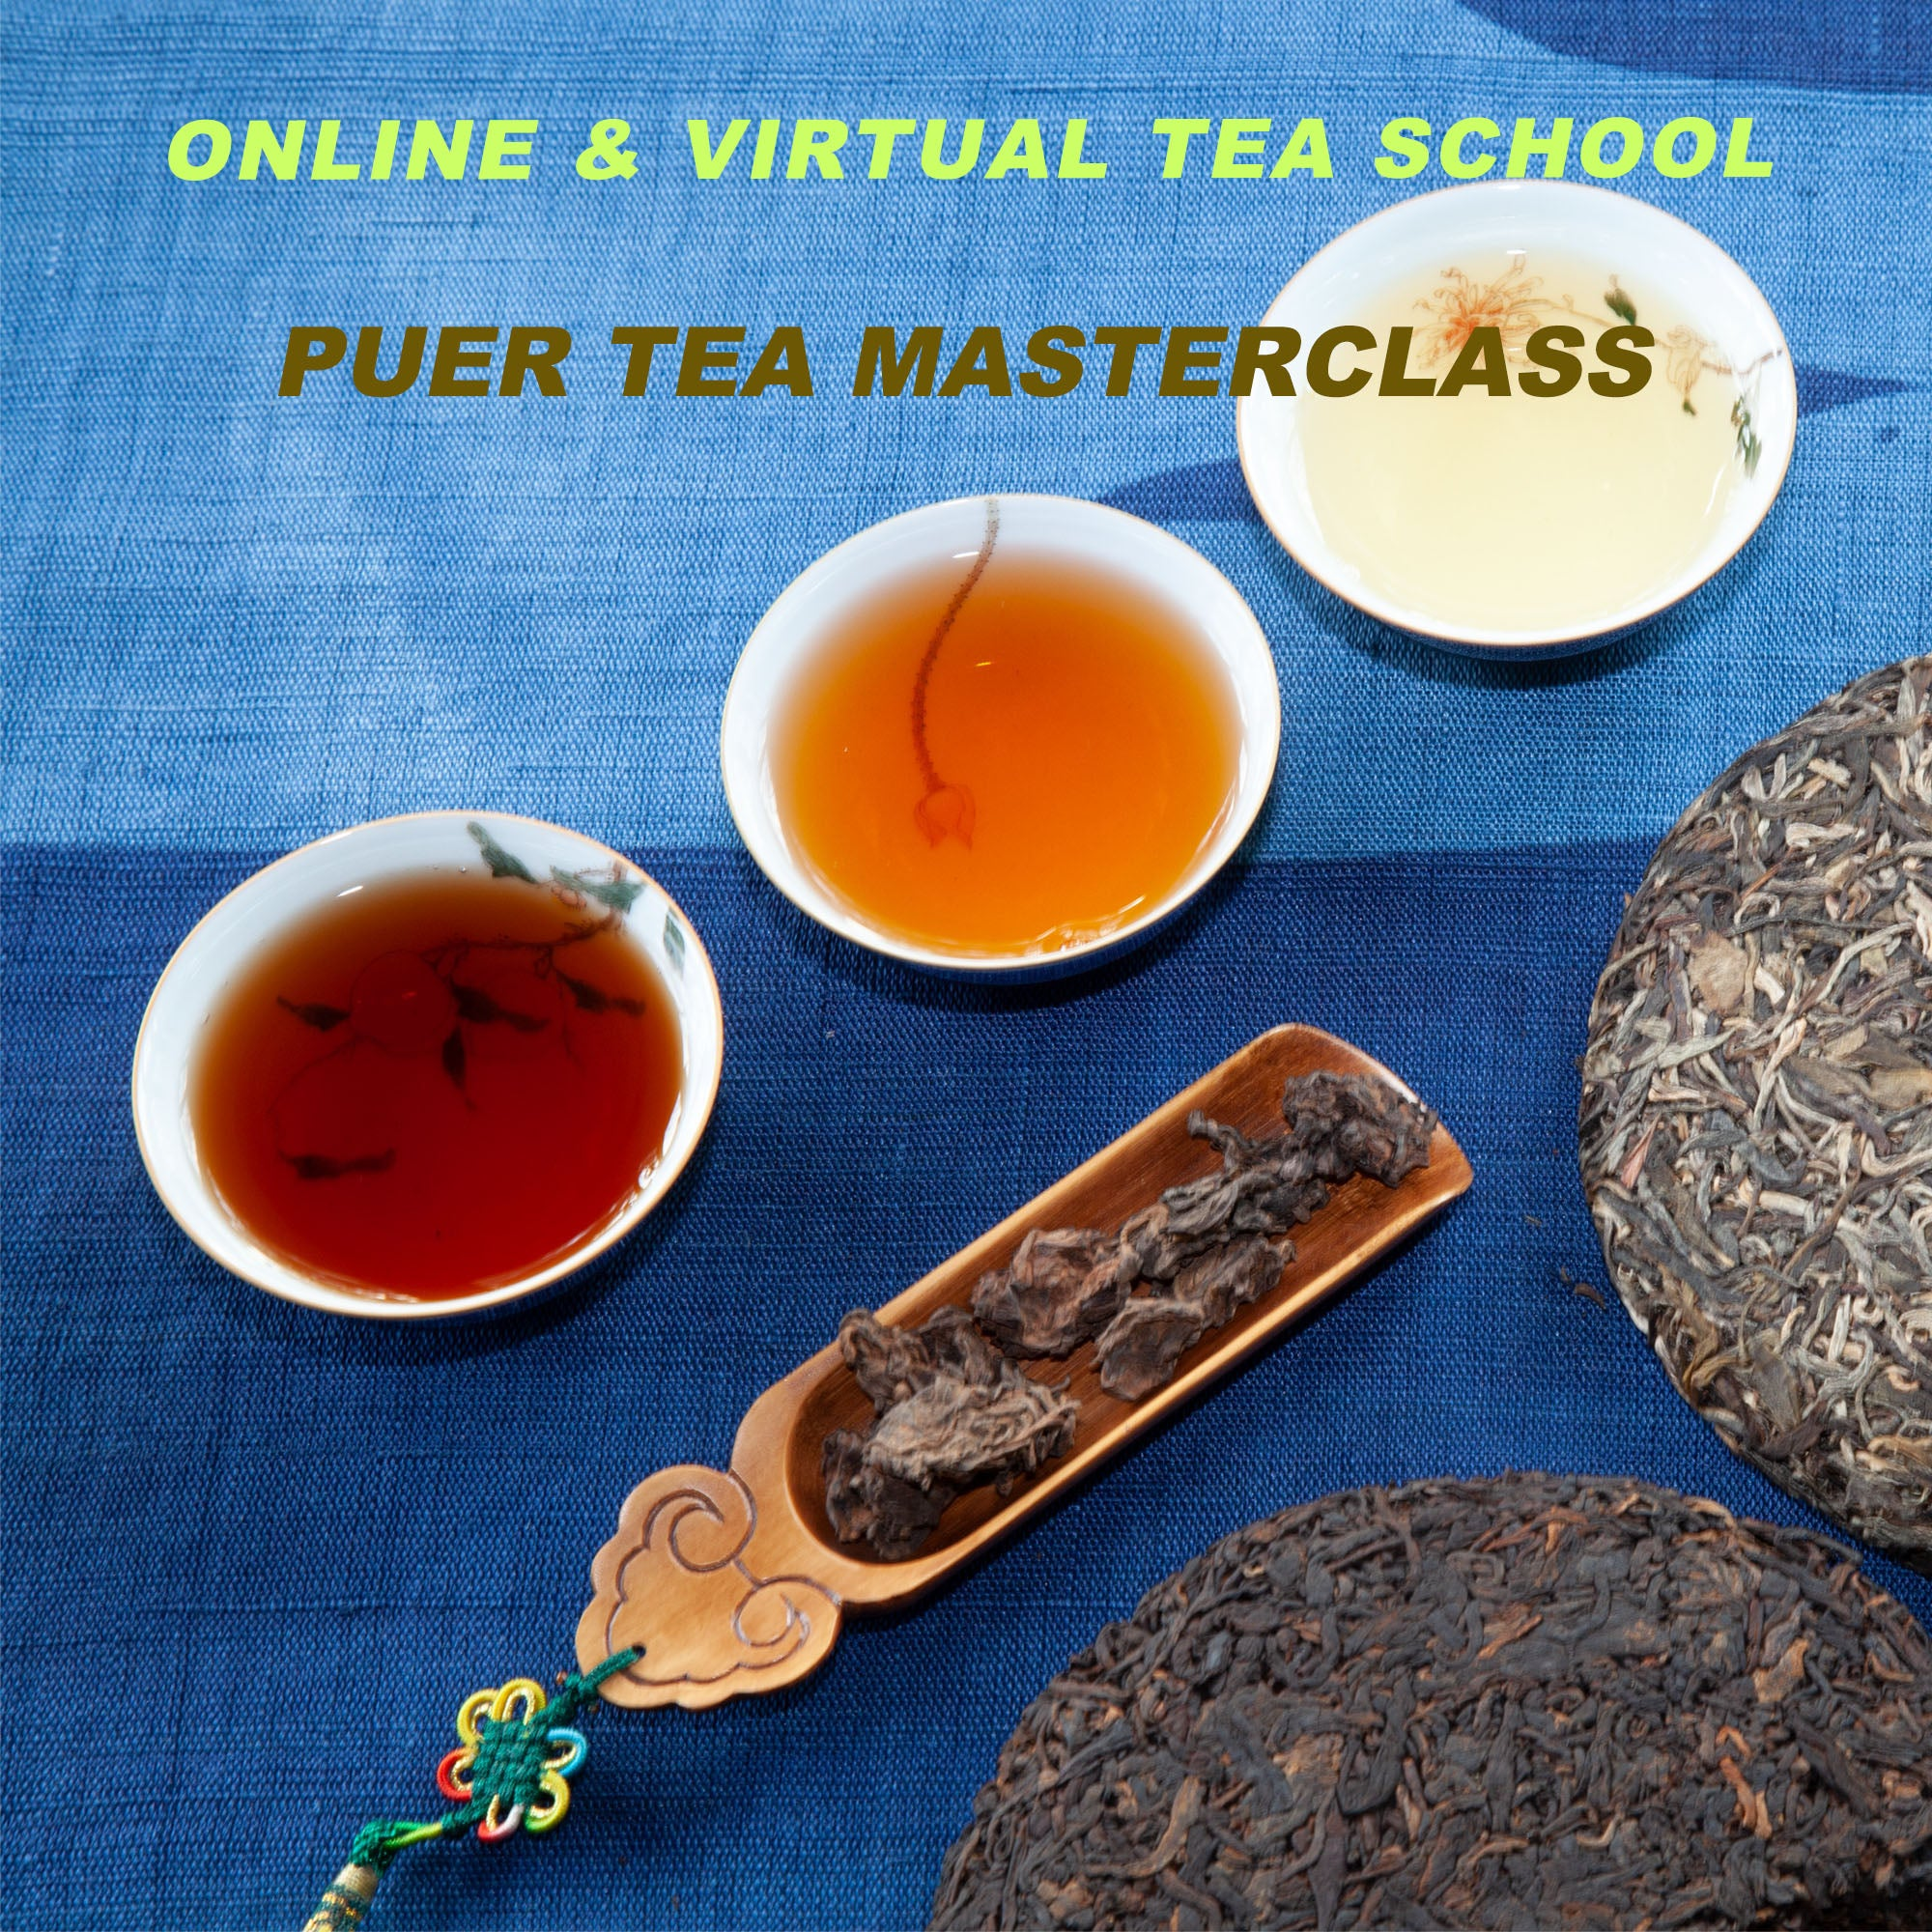 VIRTUAL PUER TEA MASTERCLASS - 18th & 19th May 2021